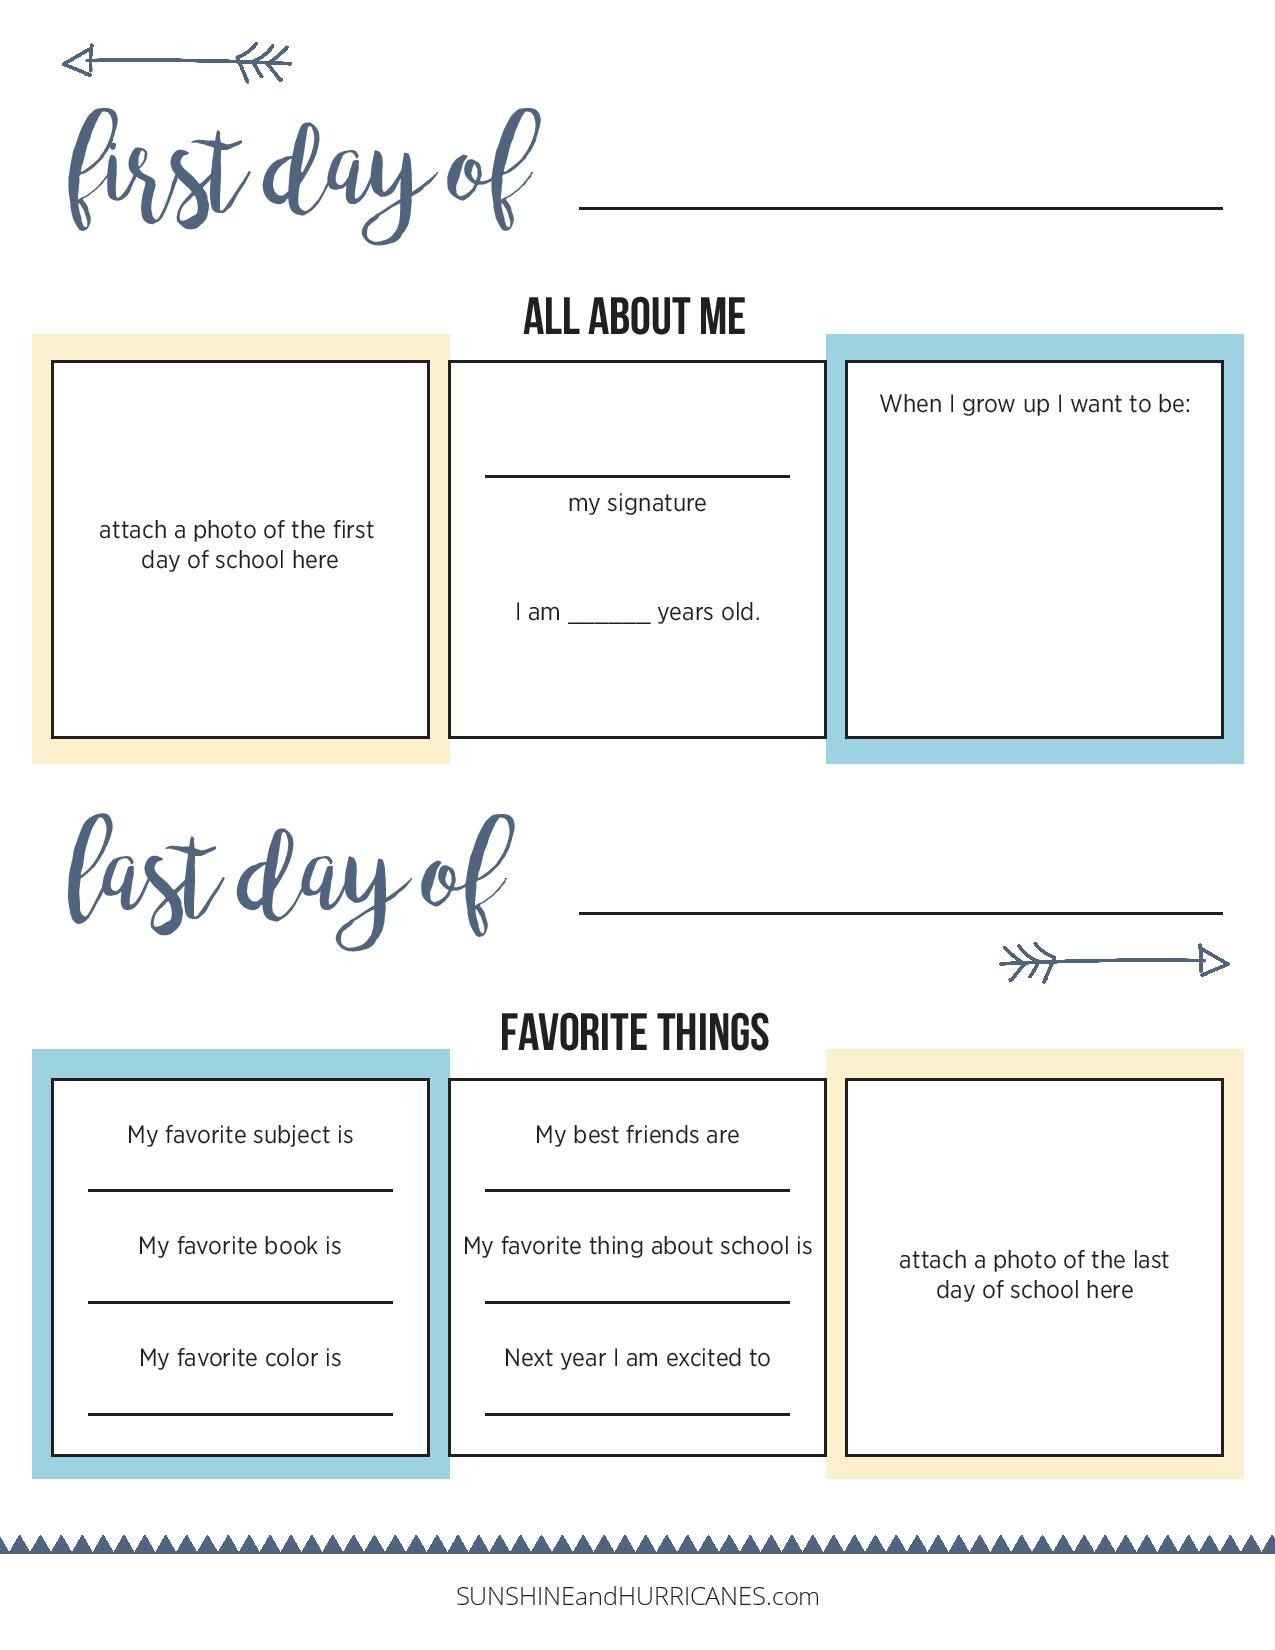 All About Me Printable First Day and Last Day of School. It's amazing how much our children change from the first day of school to the last day. Everything from their signature to their favorite food. Record these little things about them so you don't forget. First Day of School All About Me FREE Printable.